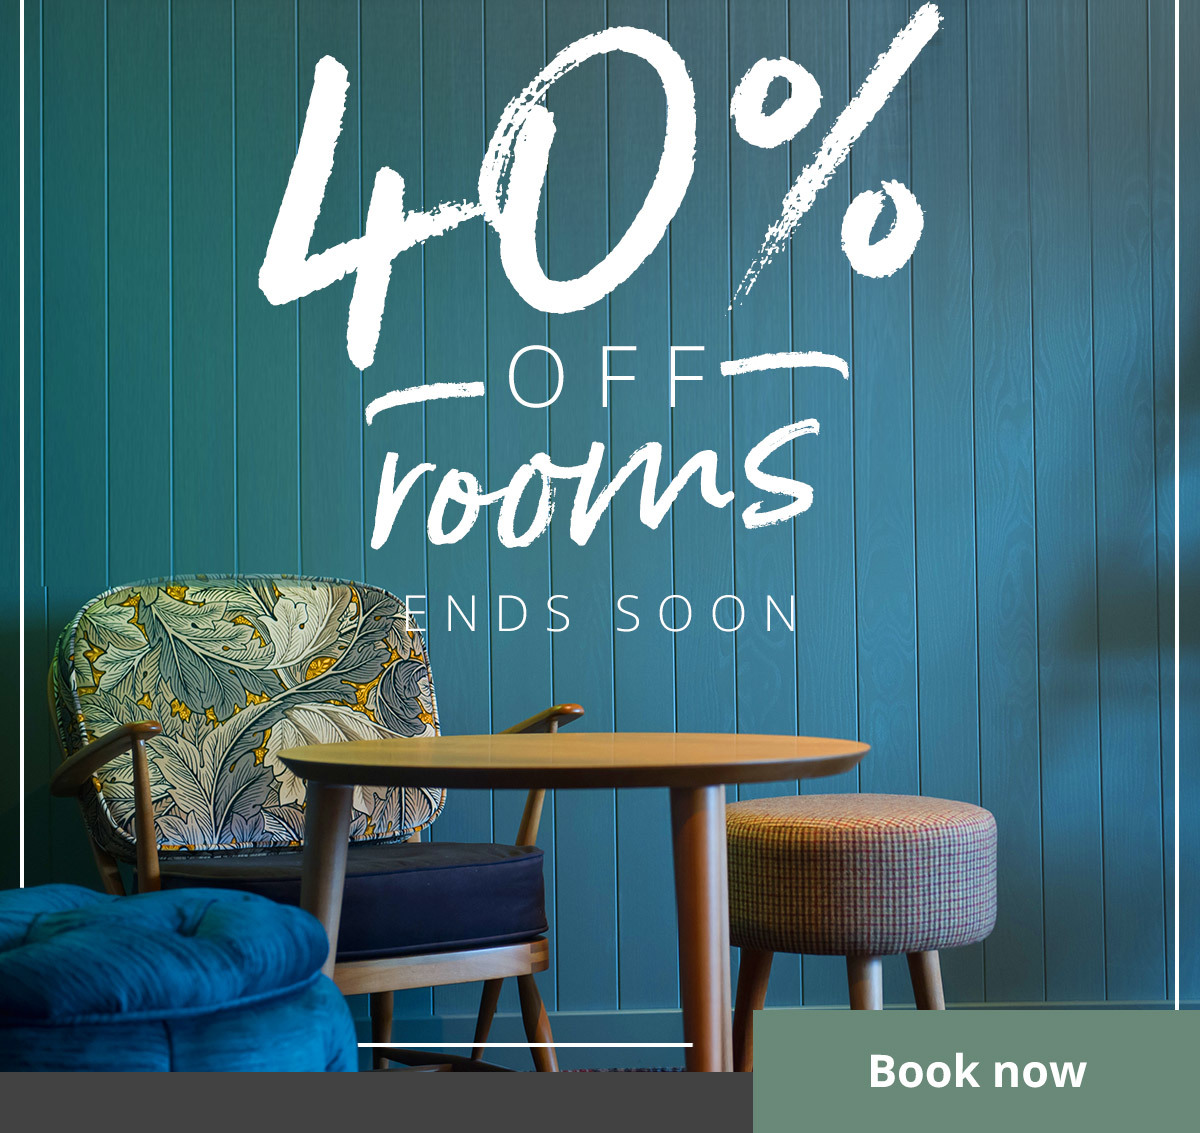 With 40% off our rooms until 31st January, there are so many reasons to book for 2020.